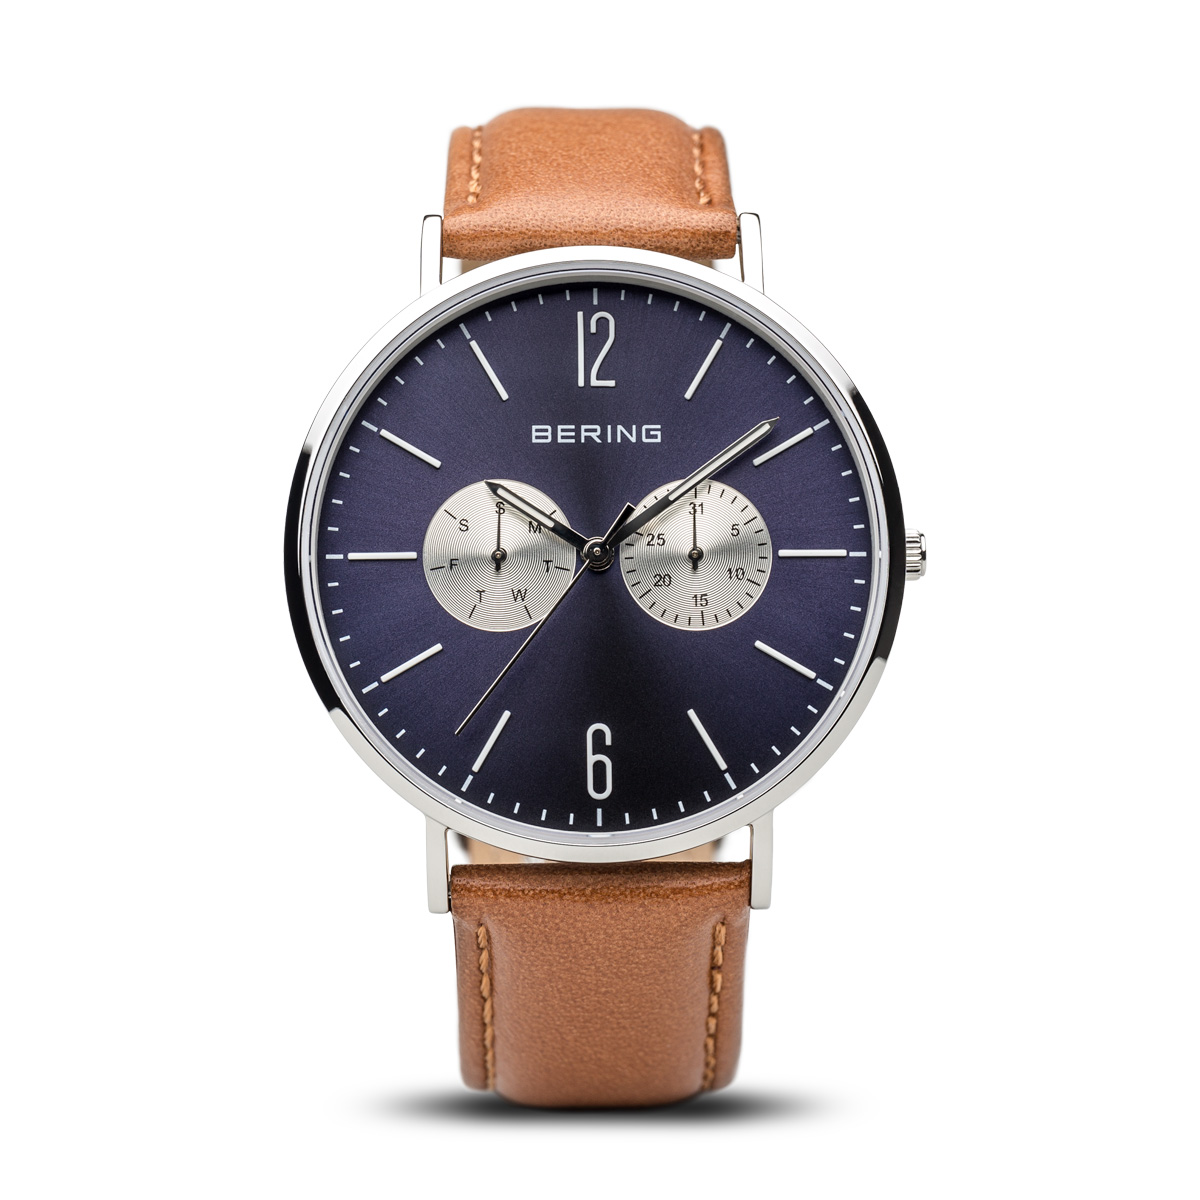 Montre homme - 20   Joaillerie Ruys 33f86b7ebcc